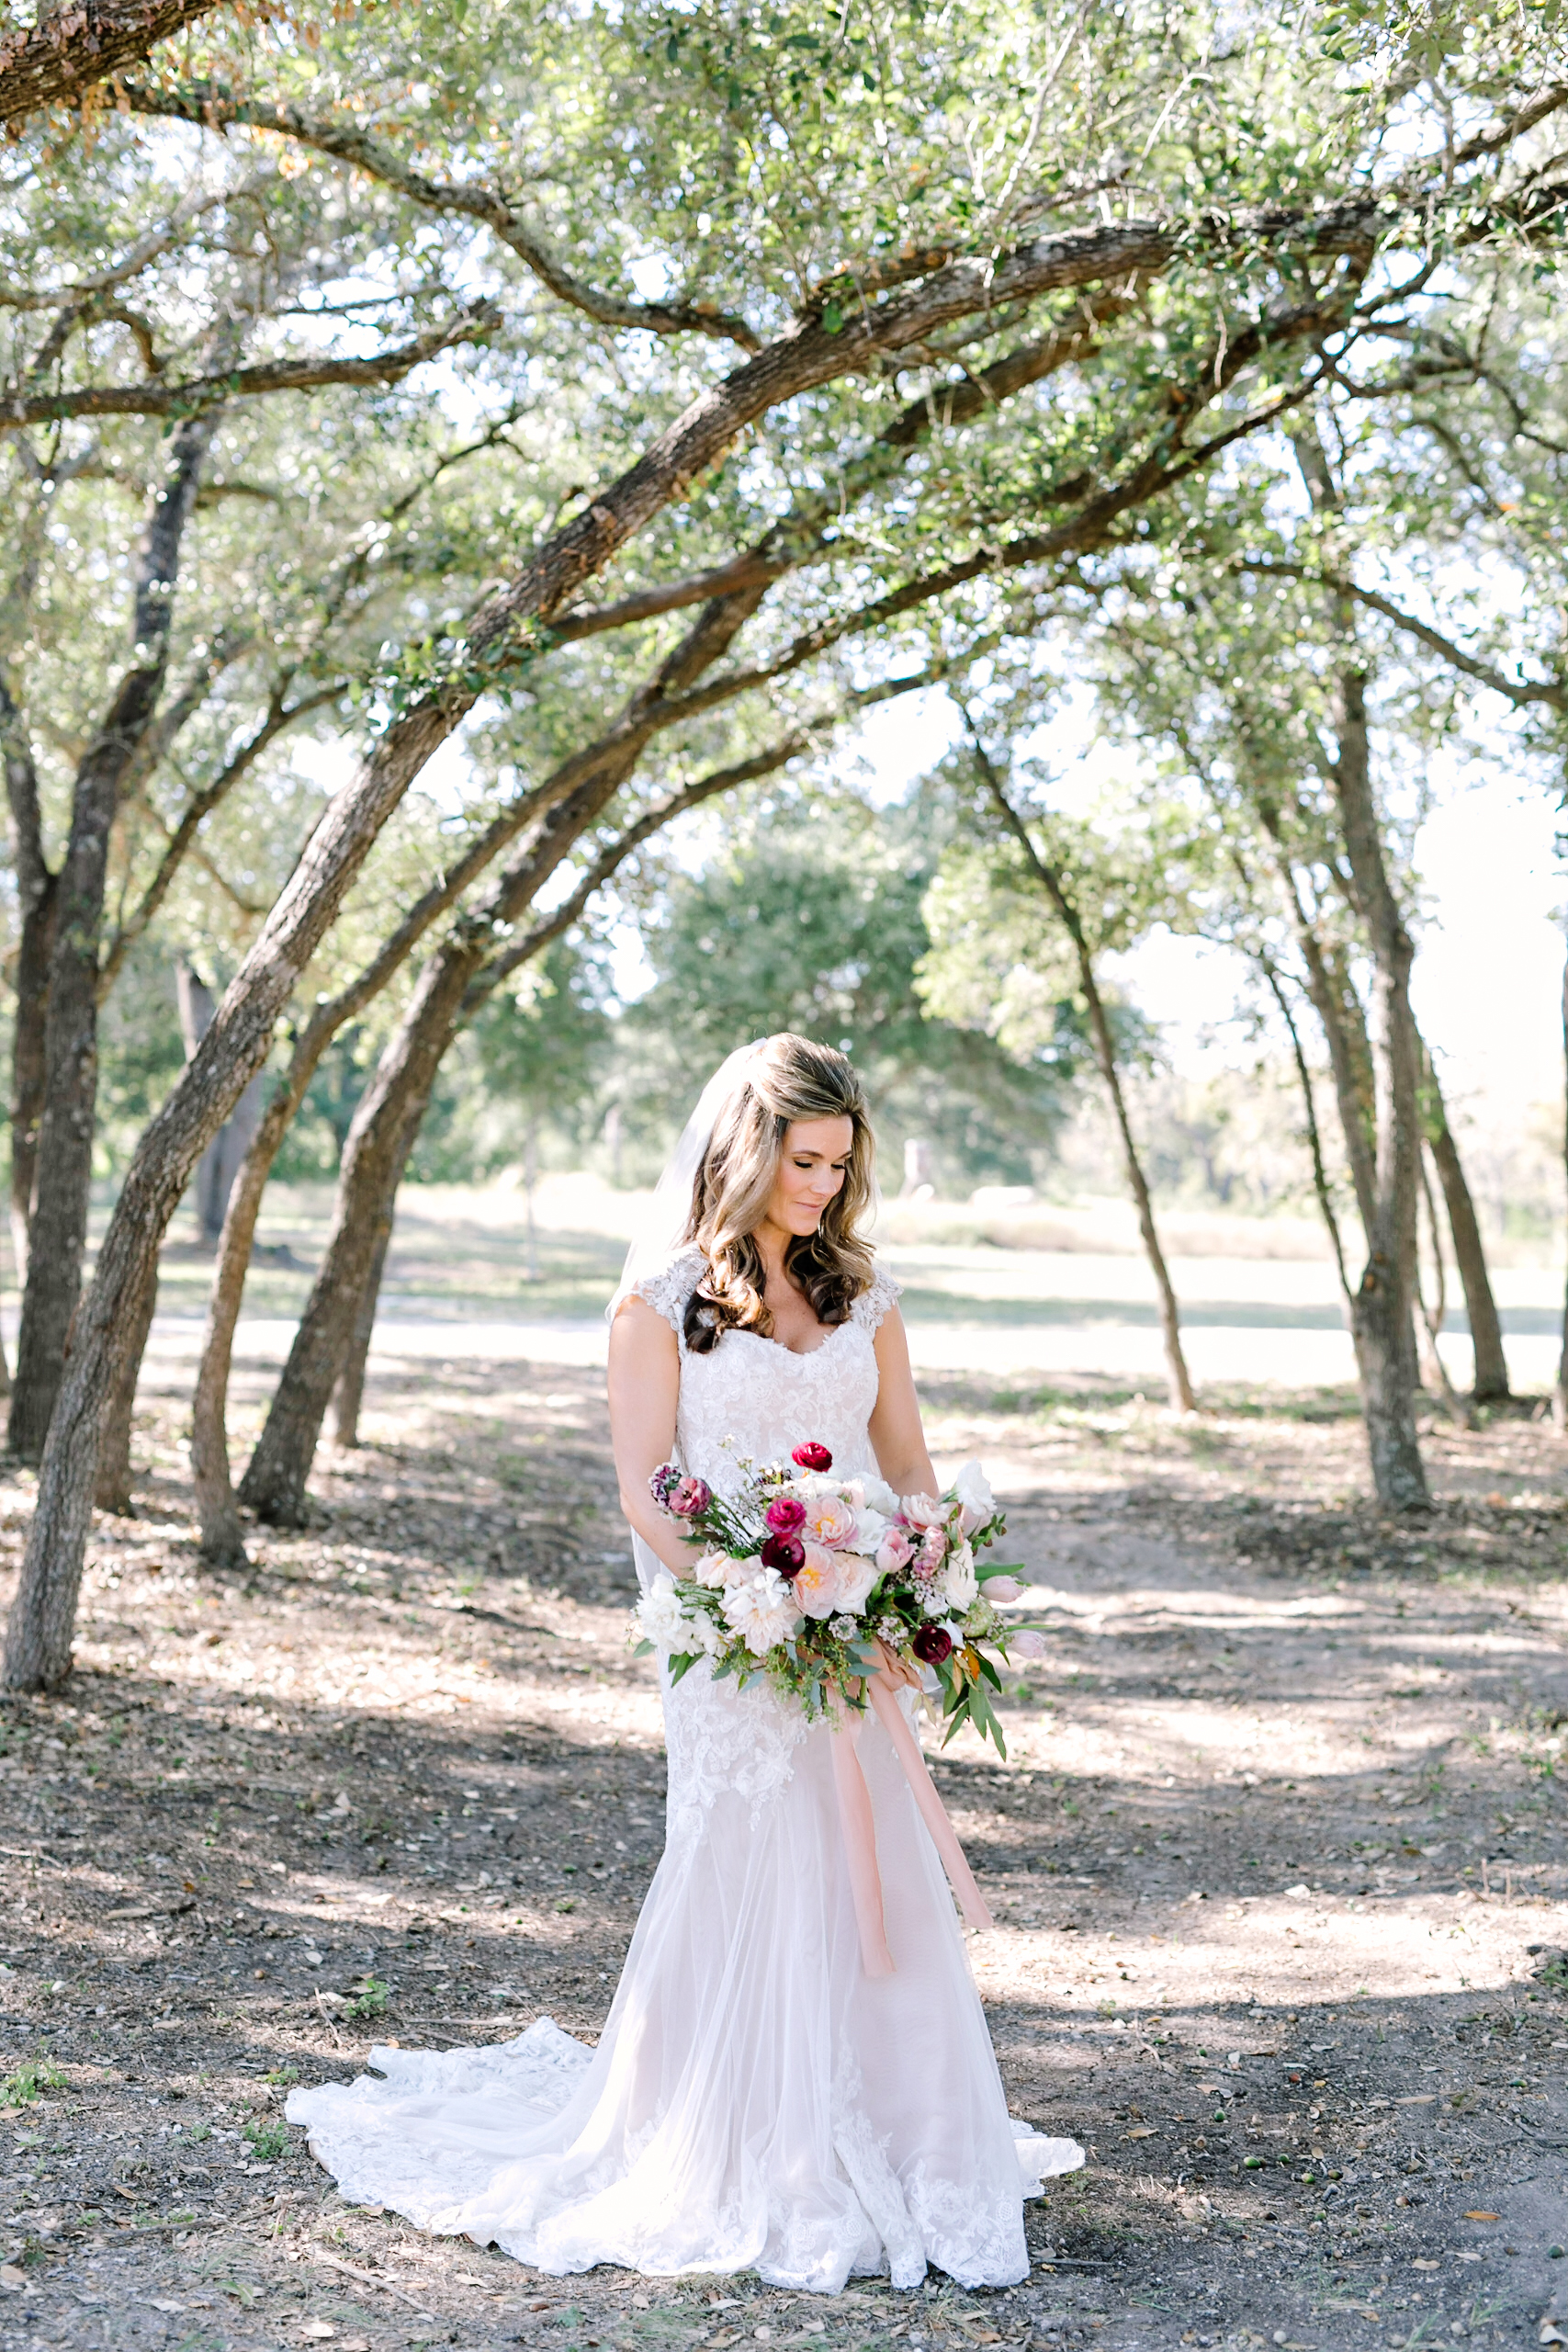 Jennifer & Tim's Wedding | Julie Wilhite Photography | Austin Wedding | Outdoor Wedding | via juliewilhite.com